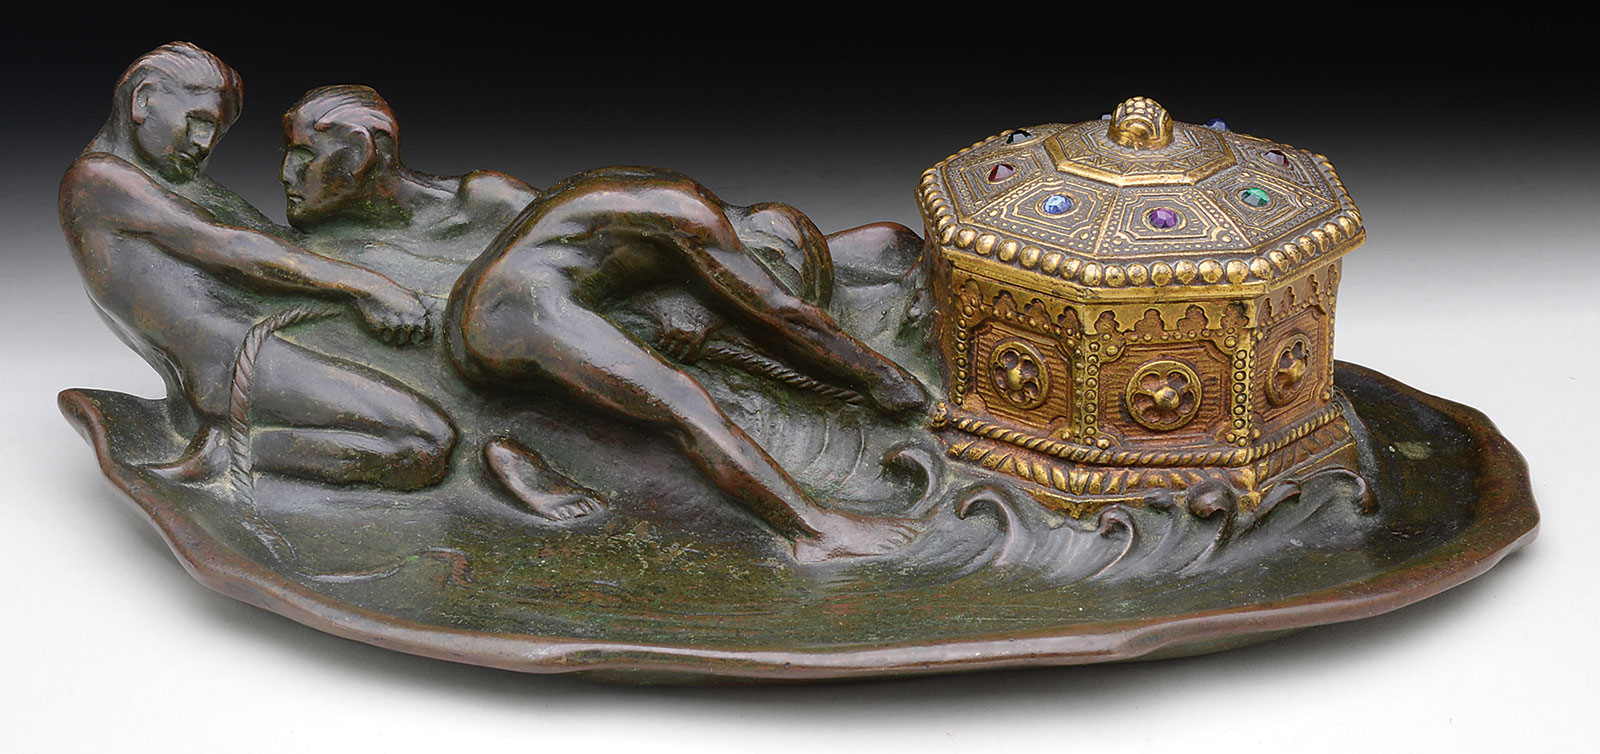 Fine Tiffany Studios Lighting And Other Rarities Take Charge At James D Julia S 2017 Late Fall